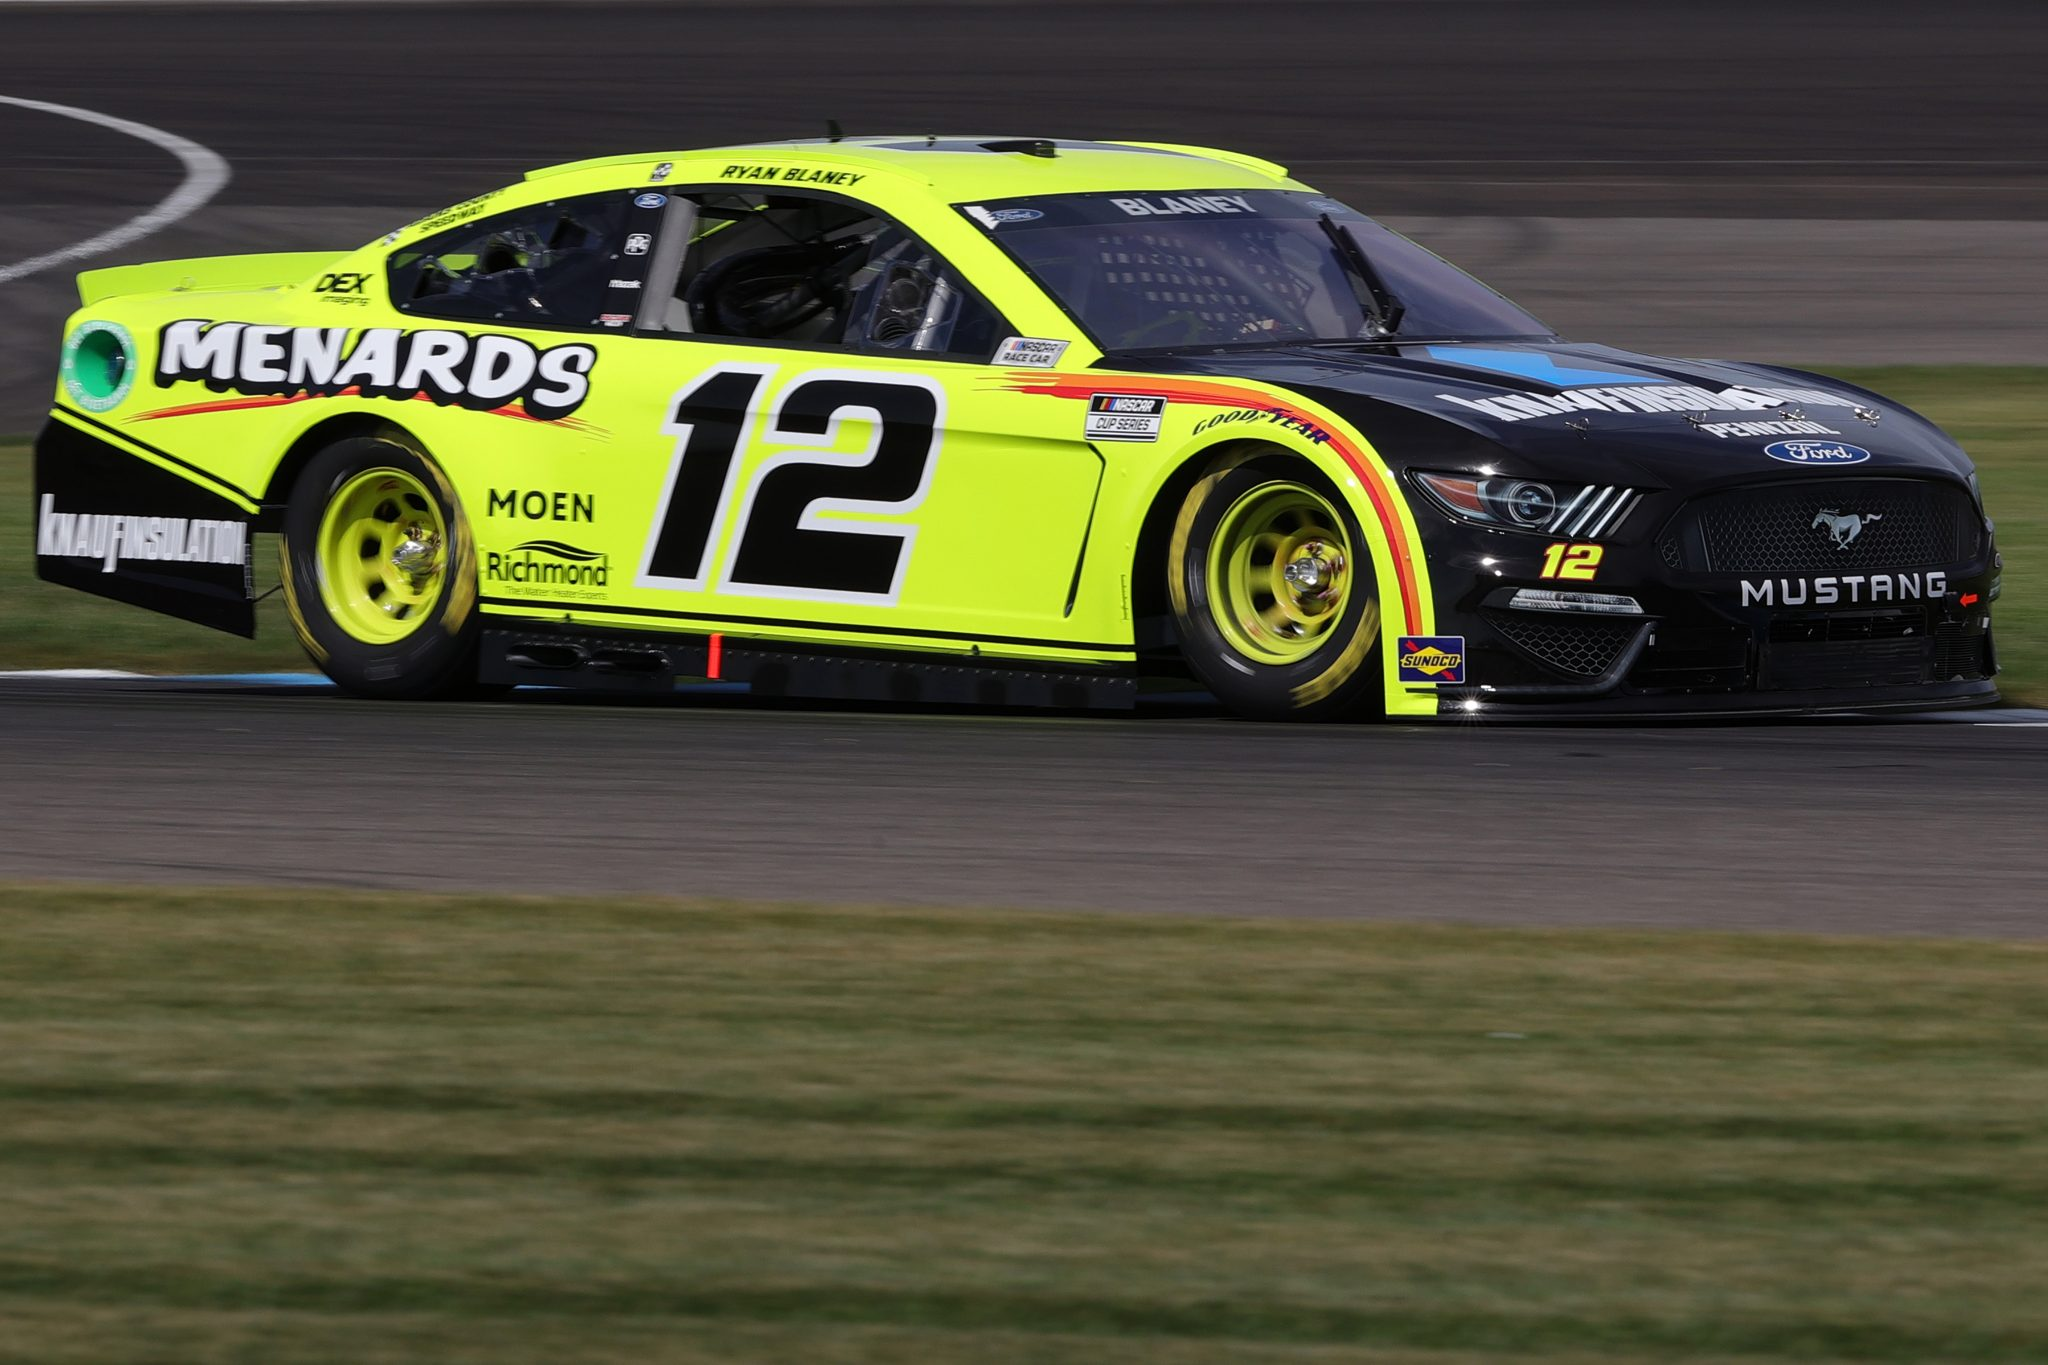 INDIANAPOLIS, INDIANA - AUGUST 14: Ryan Blaney, driver of the #12 Menards/Knauf Ford, drives during practice for the NASCAR Cup Series Verizon 200 at the Brickyard at Indianapolis Motor Speedway on August 14, 2021 in Indianapolis, Indiana. (Photo by Stacy Revere/Getty Images)   Getty Images